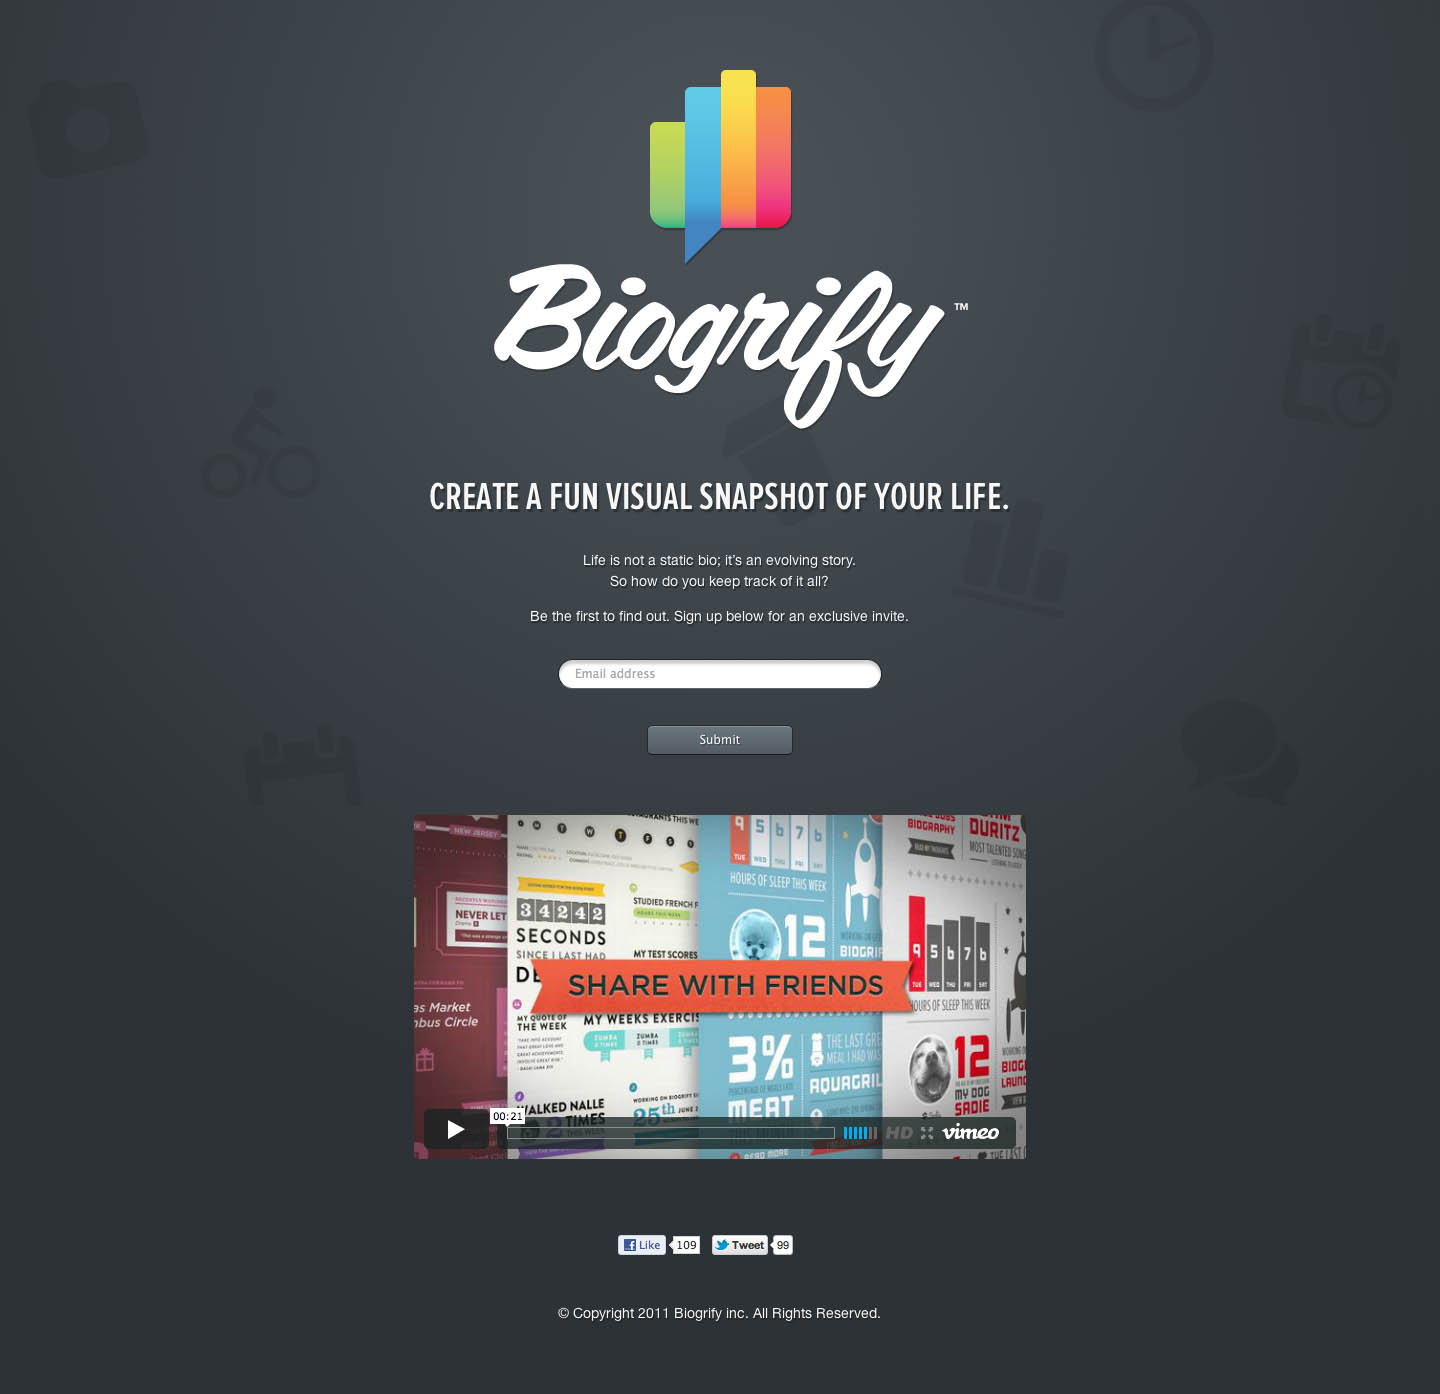 Biogrify Website Screenshot